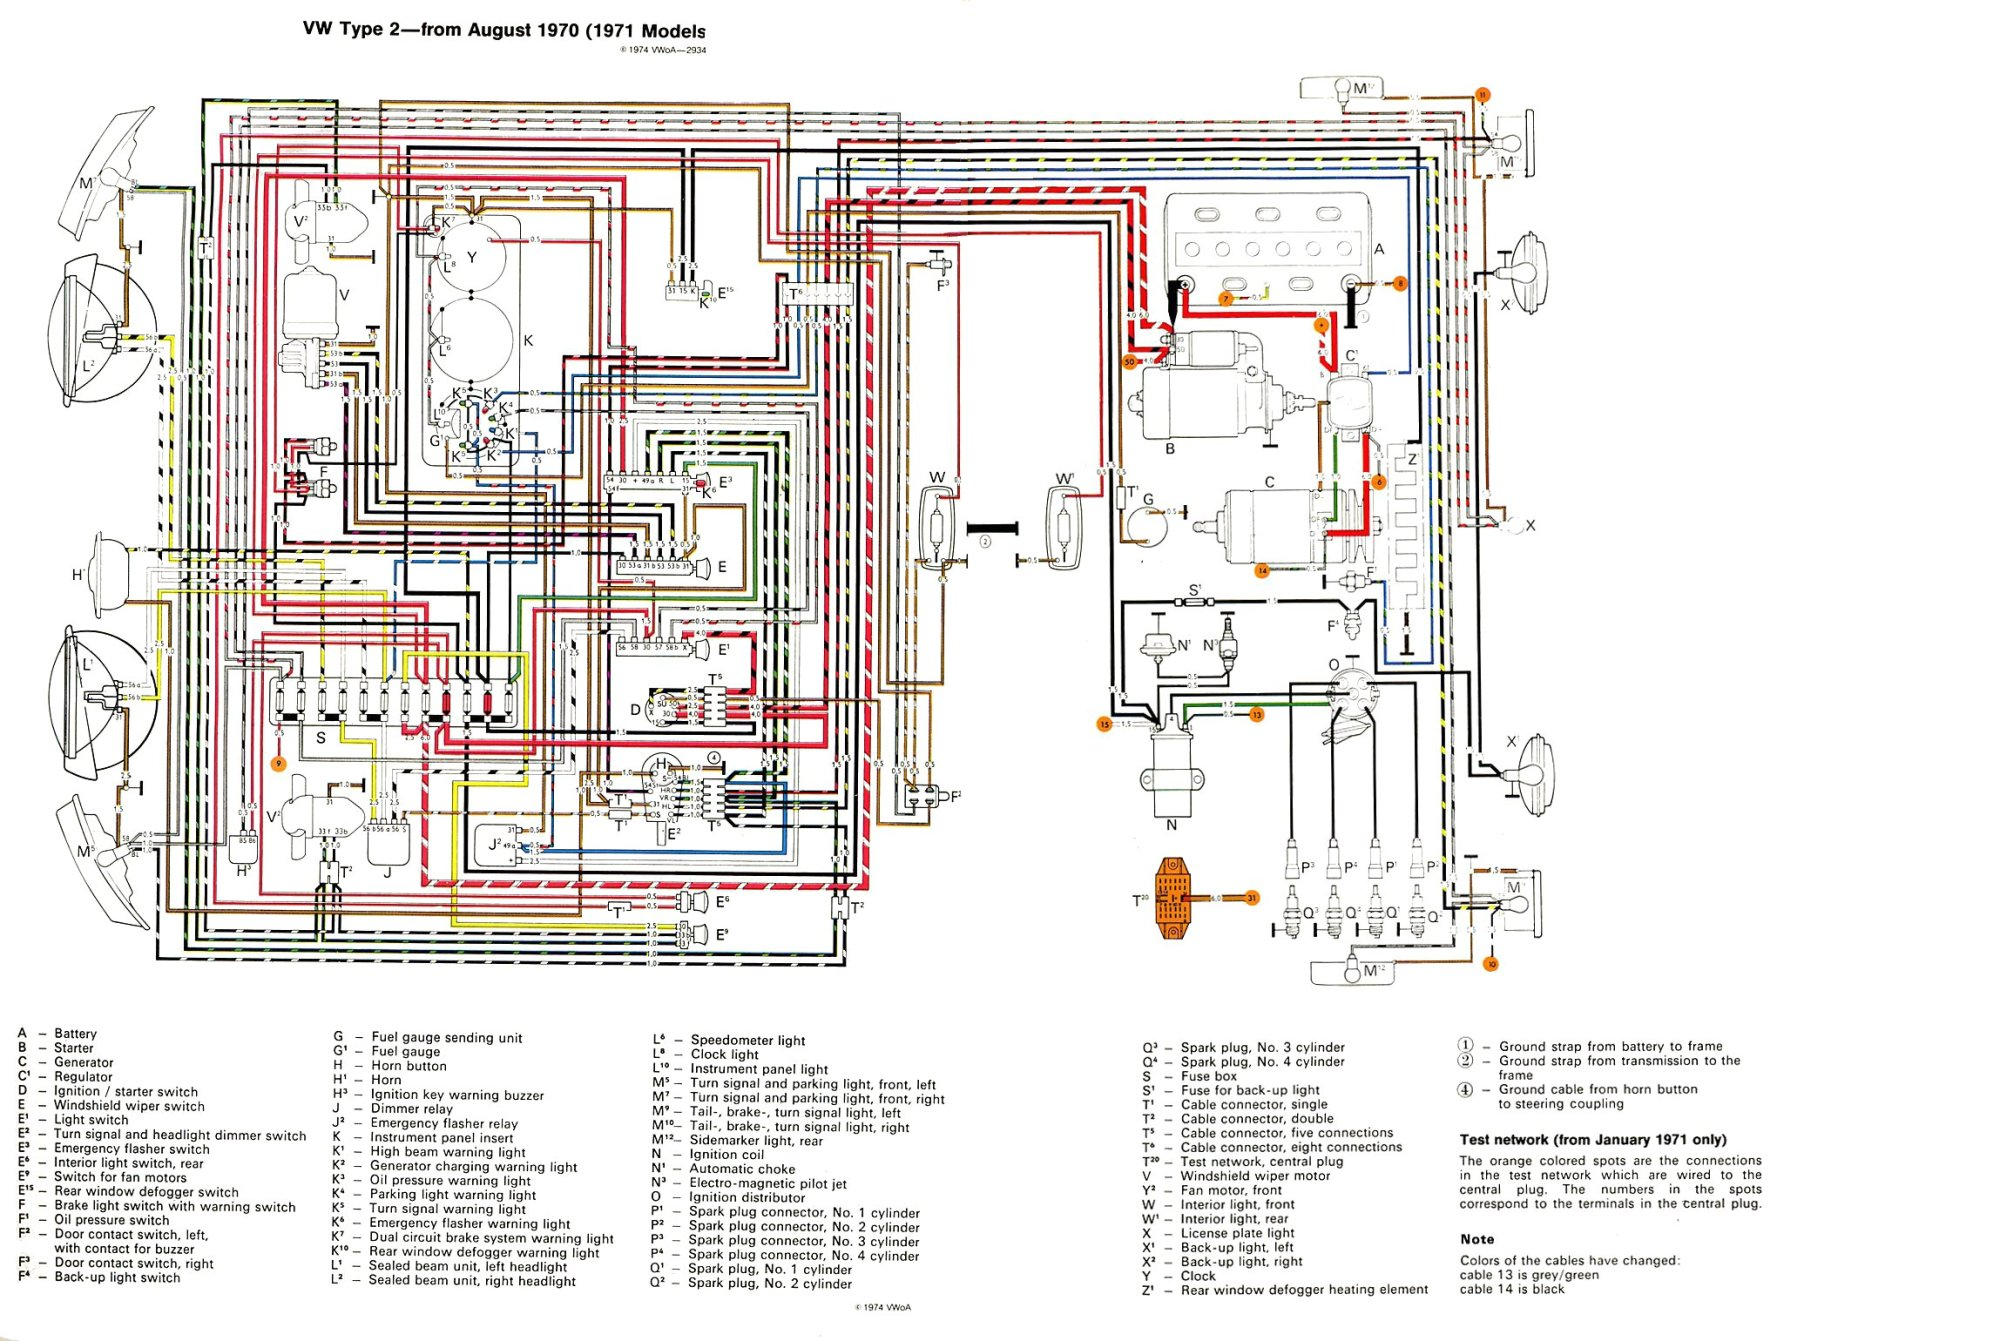 hight resolution of 1960 impala wiring diagram with alternator starting know about 2007 chevy impala rear defogger wiring diagram